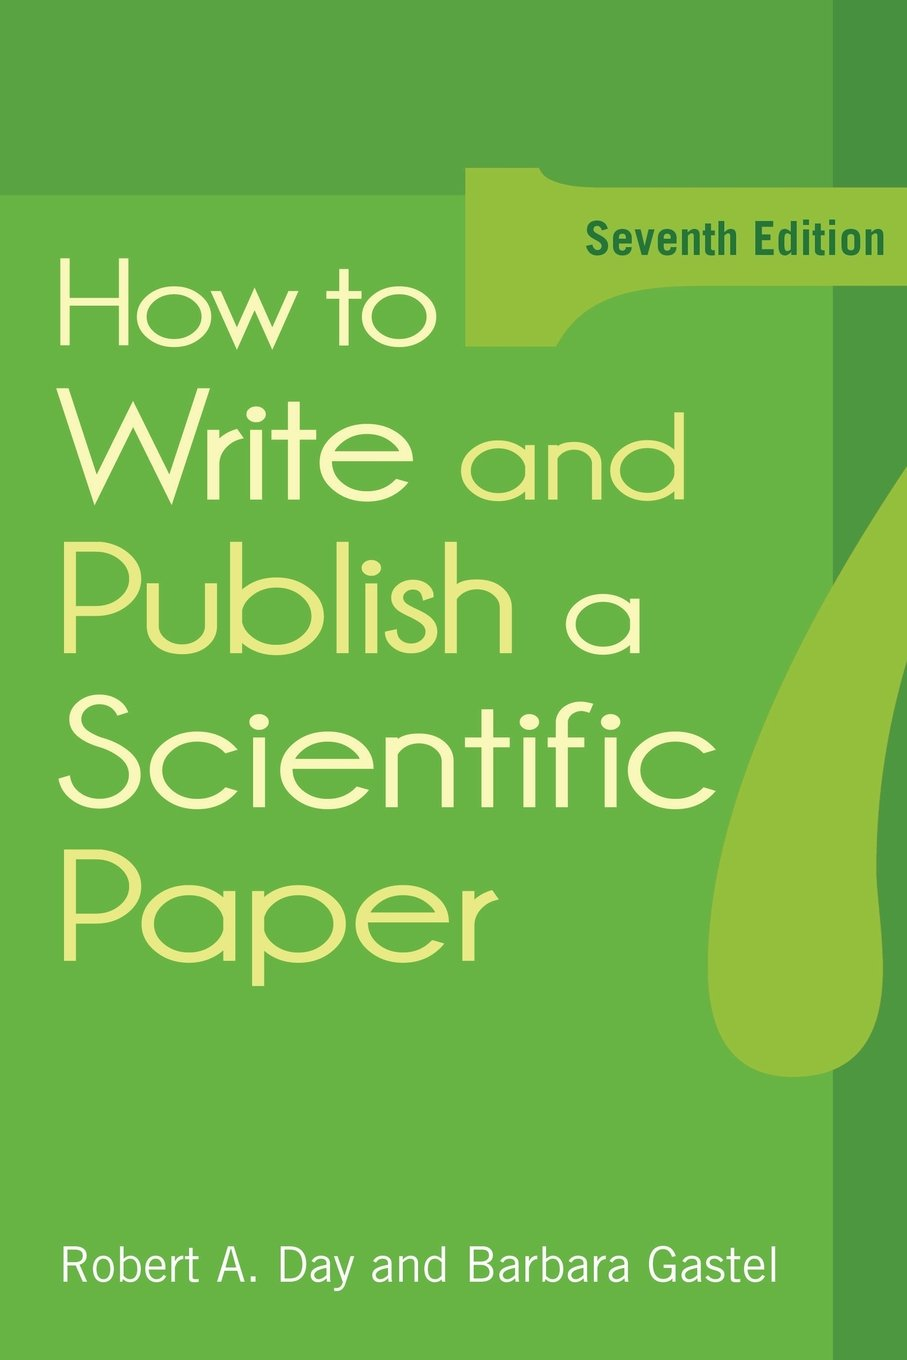 001 Research Paper 61akxkcqzal How To Write And Publish Scientific Surprising A Pdf Full